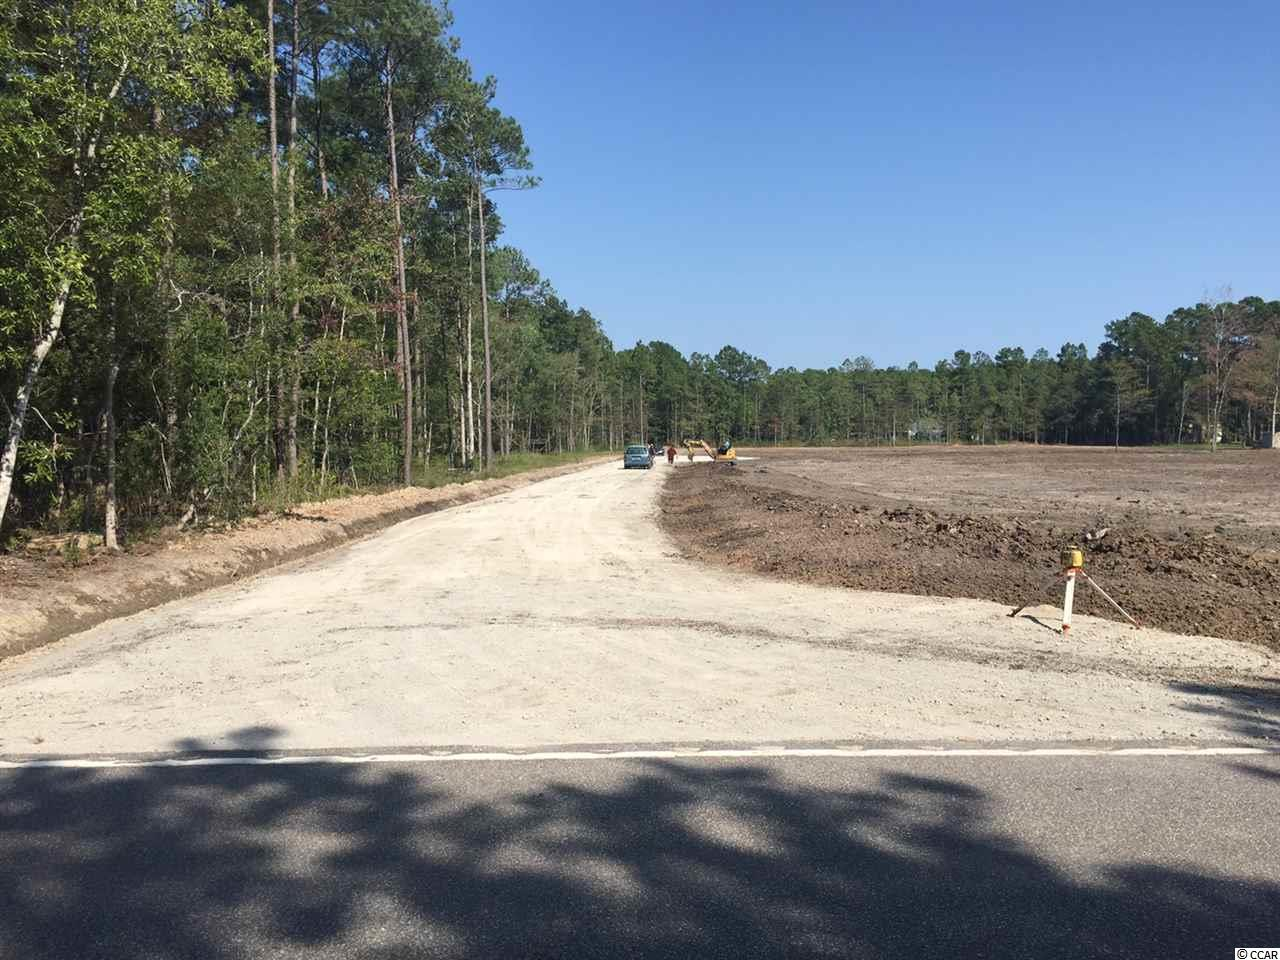 PLENTY OF ROOM ON THIS GREAT CLEARED 5 ACRE TRACT IN LITTLE RIVER NO HOA (PINE ERE ACRES) BUILD YOUR DREAM HOUSE AND HAVE ROOM TO HAVE YOUR OWN STORAGE BUILDING. MUST PAY WATER/SEWER IMPACT FEE'S. STICK BUILT ONLY!!TRACT IS CURRENTLY SUB DIVIDED INTO TWO 2.5 ACRE TRACTS BUT CAN BE REDONE INTO THE ORIGINAL 5 ACRE TRACT.